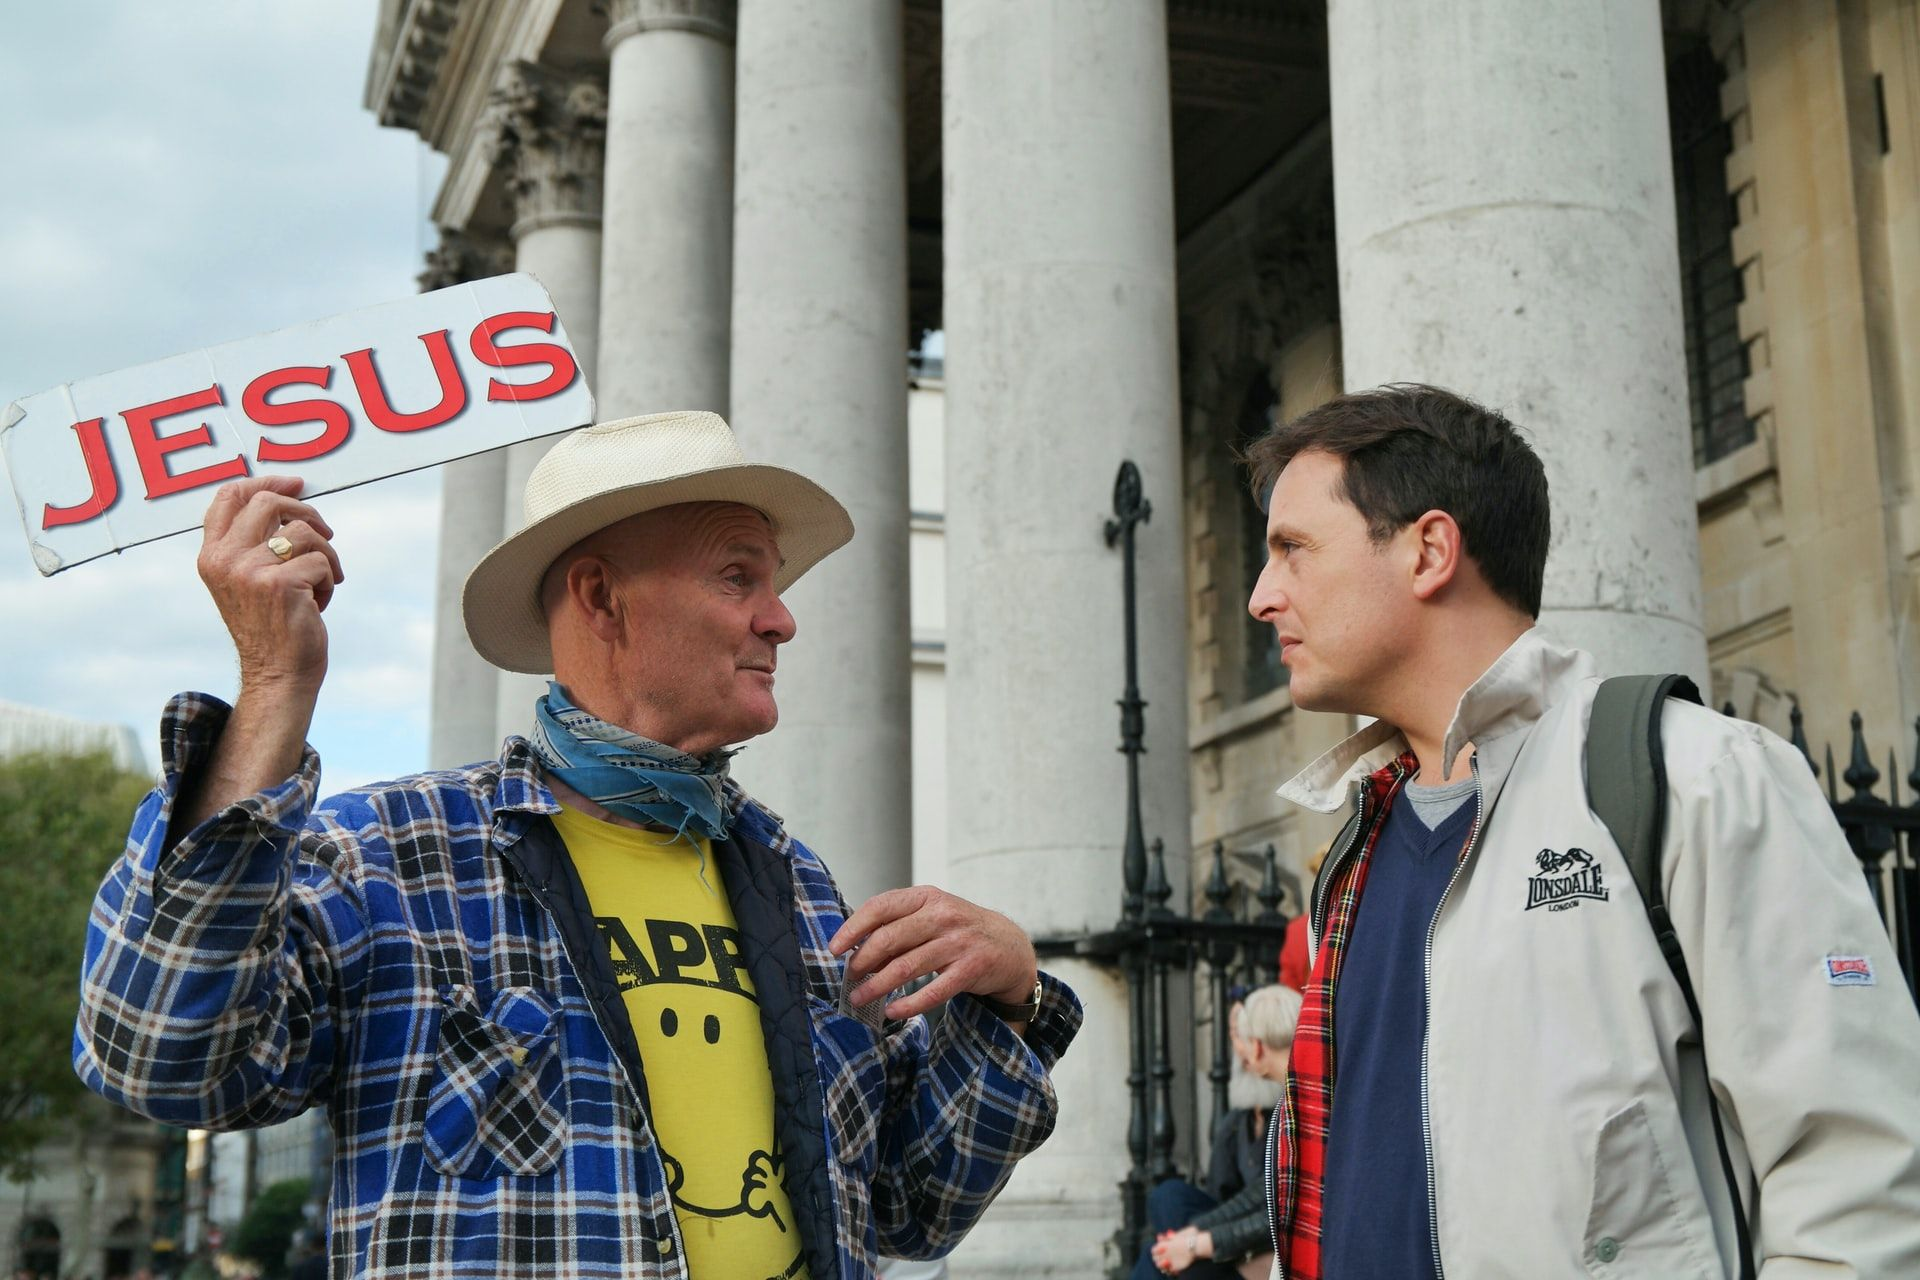 WHAT MESSAGE ARE WE SENDING OUT: A street preacher in Trafalger Square